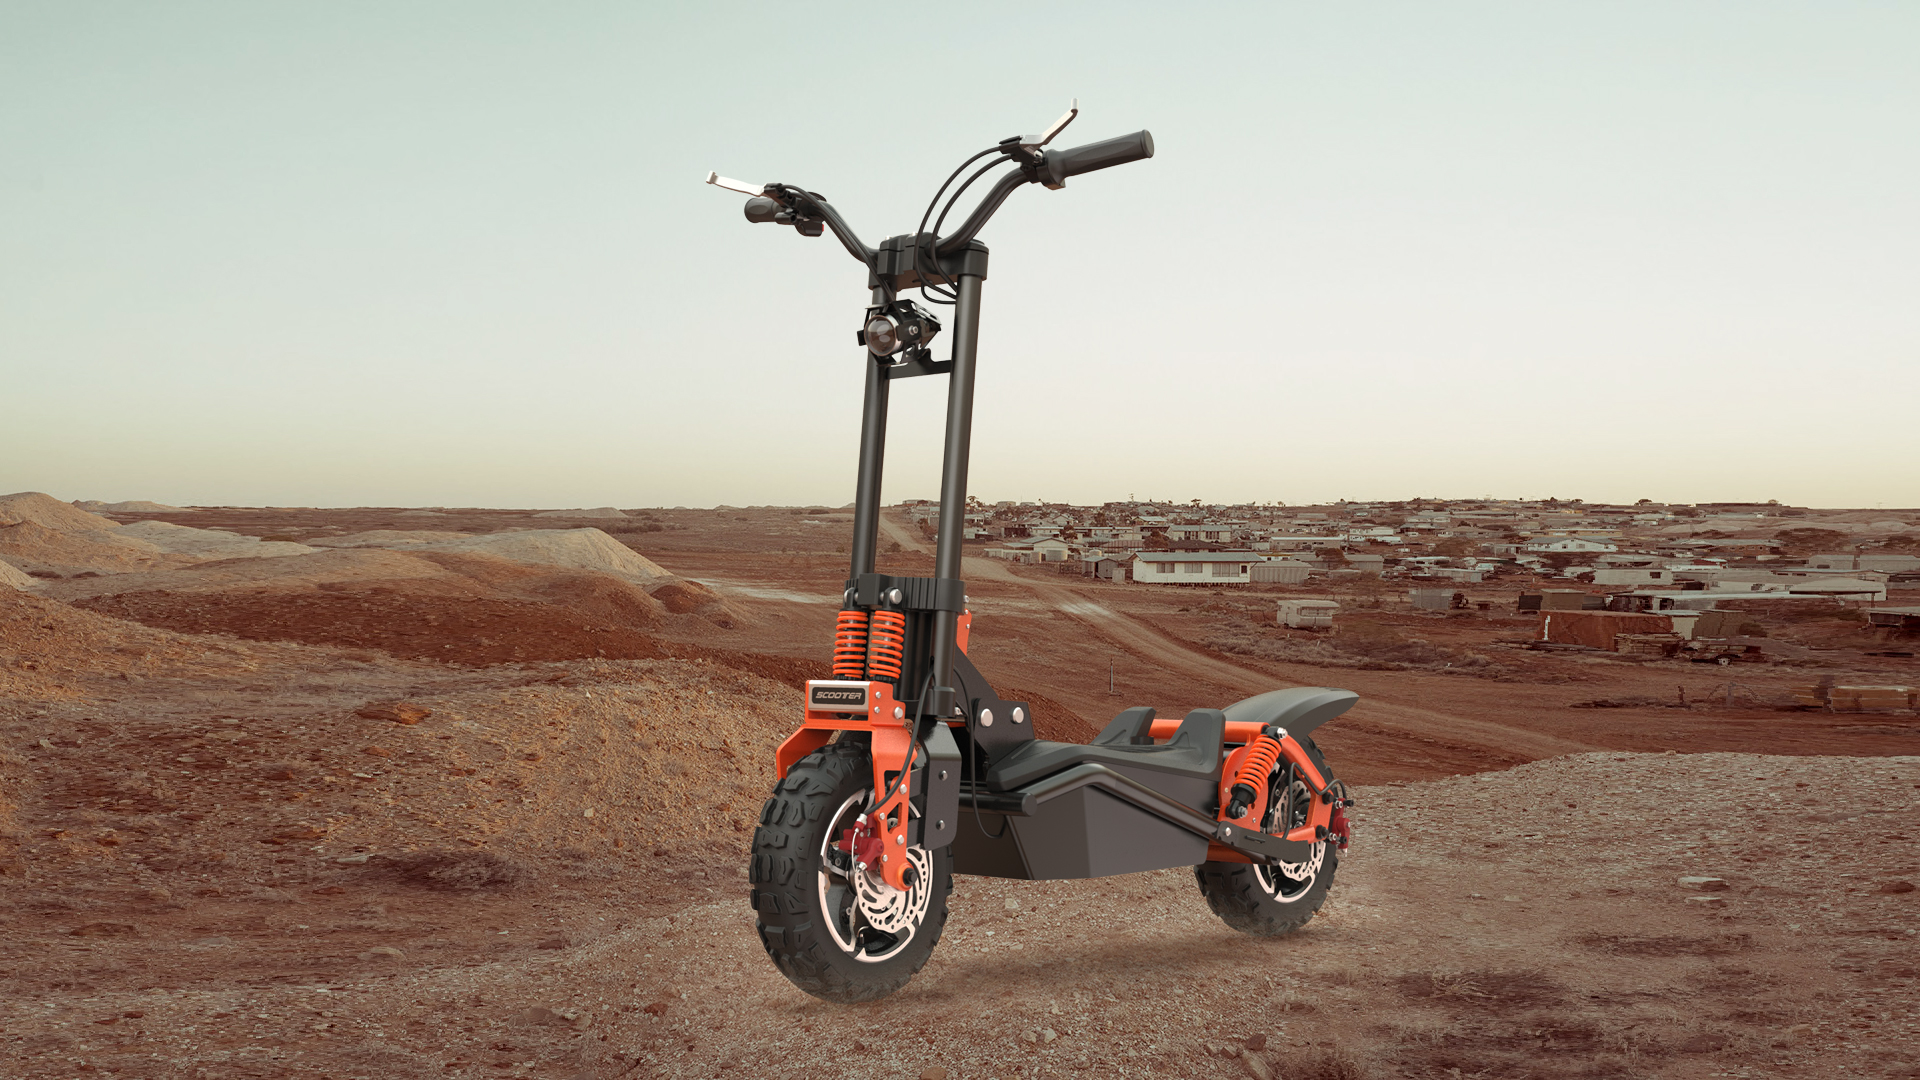 What should I do if the scooter is running low? Get it done easily